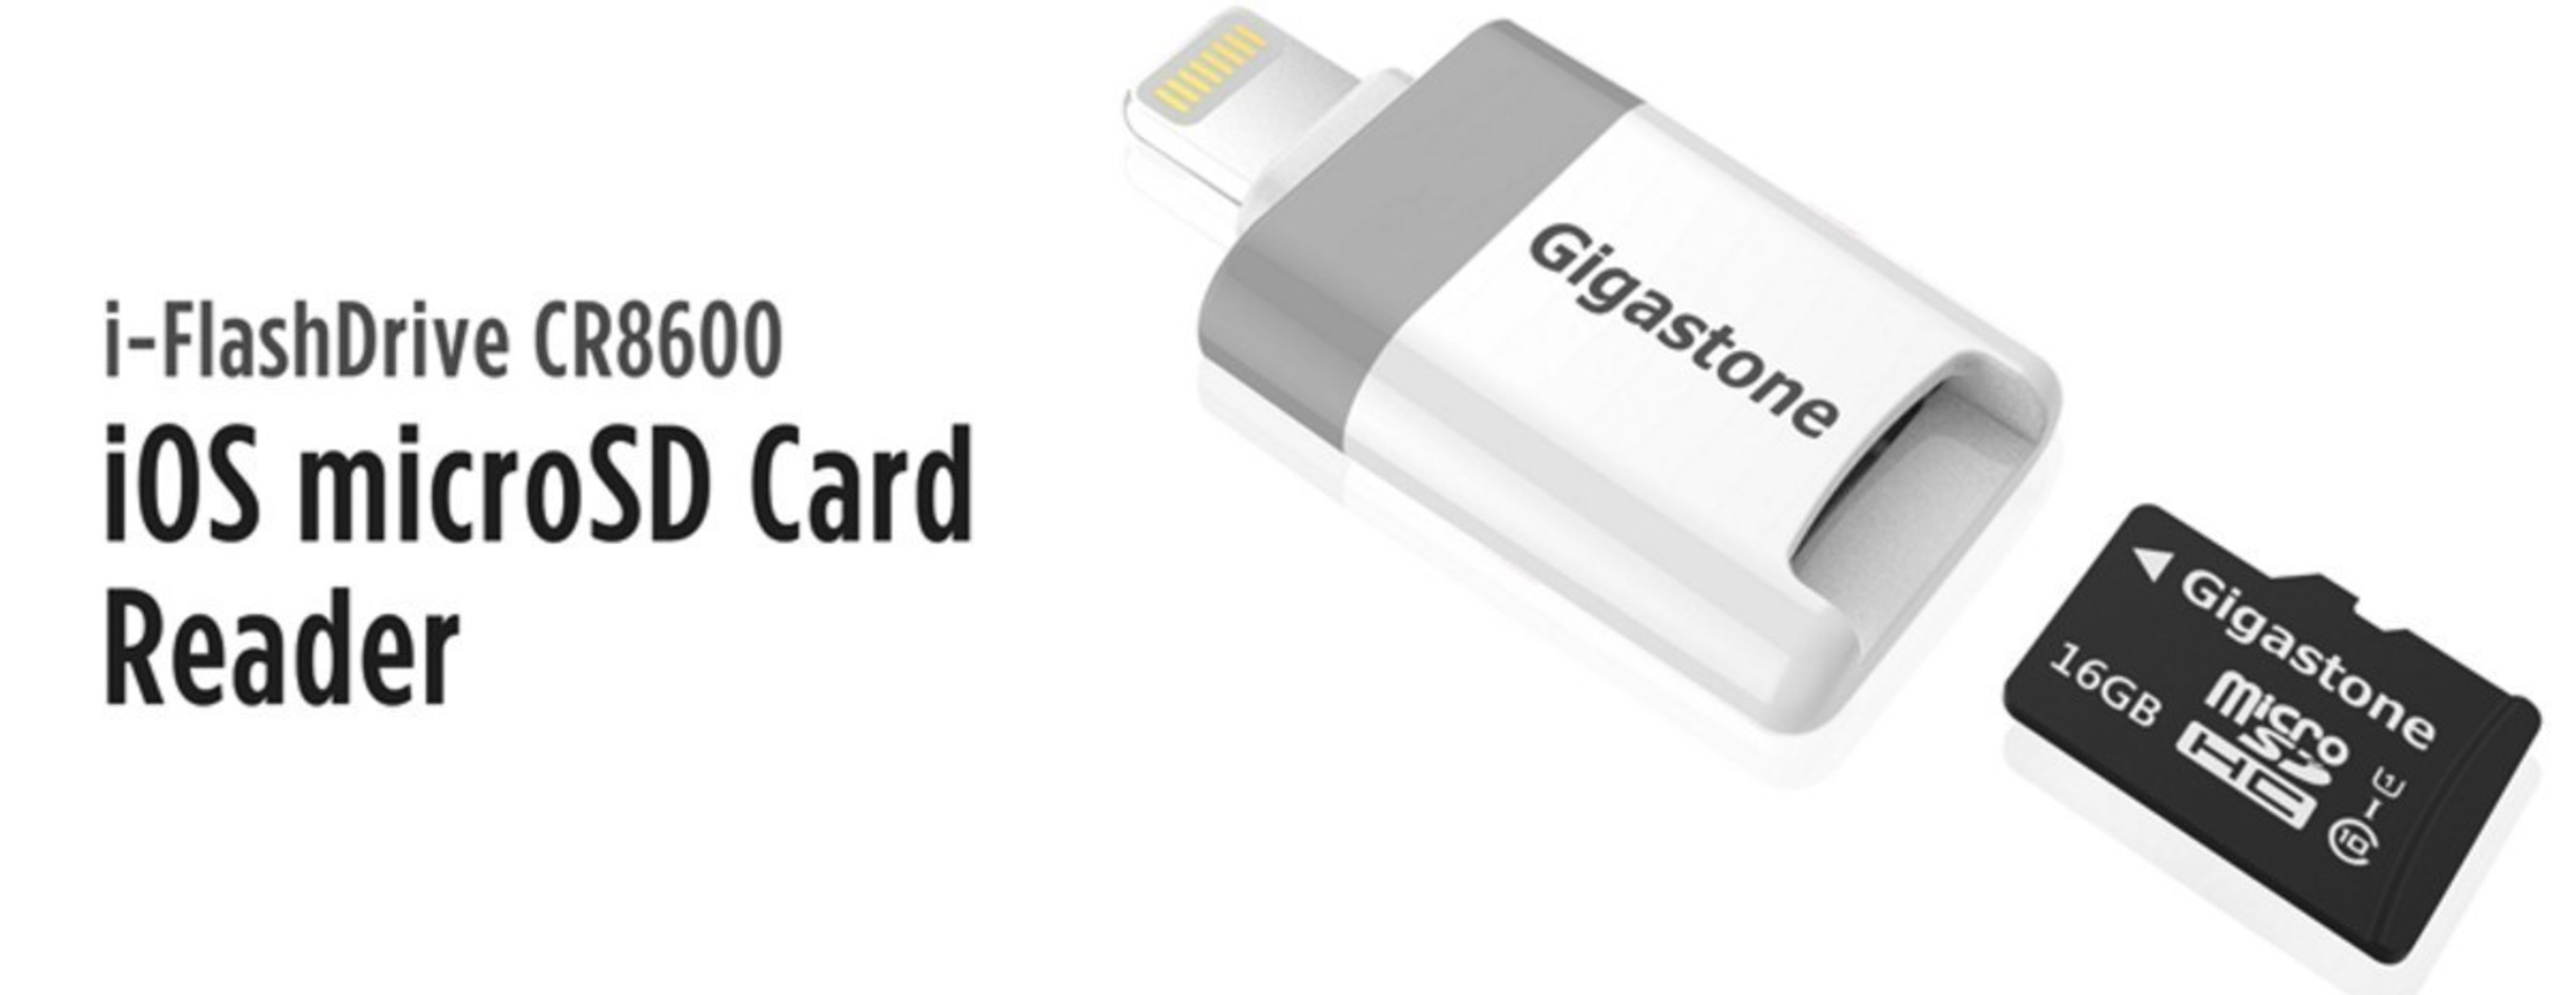 Gigastone Dominates iOS Flash Drive Arena With New Micro SD Card Reader